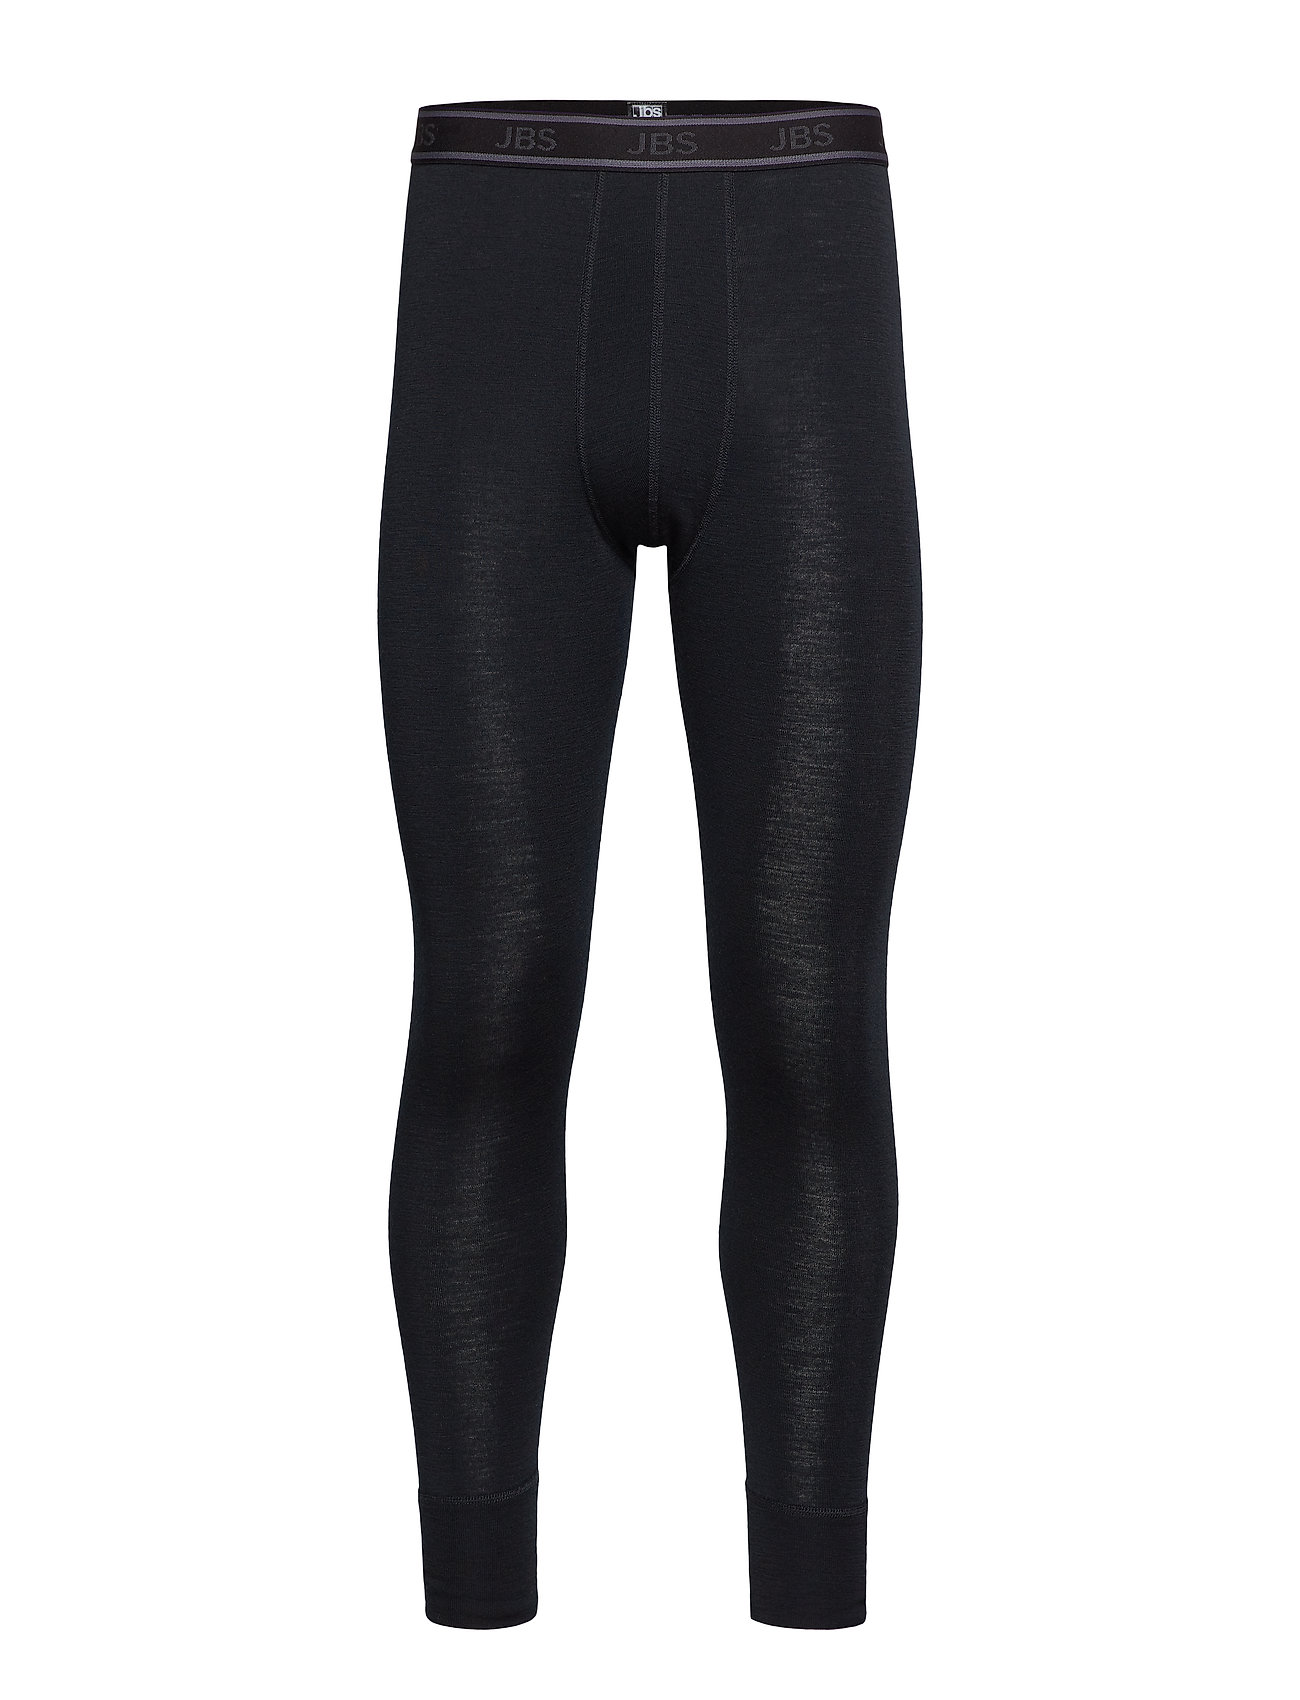 JBS JBS, long johns - BLACK